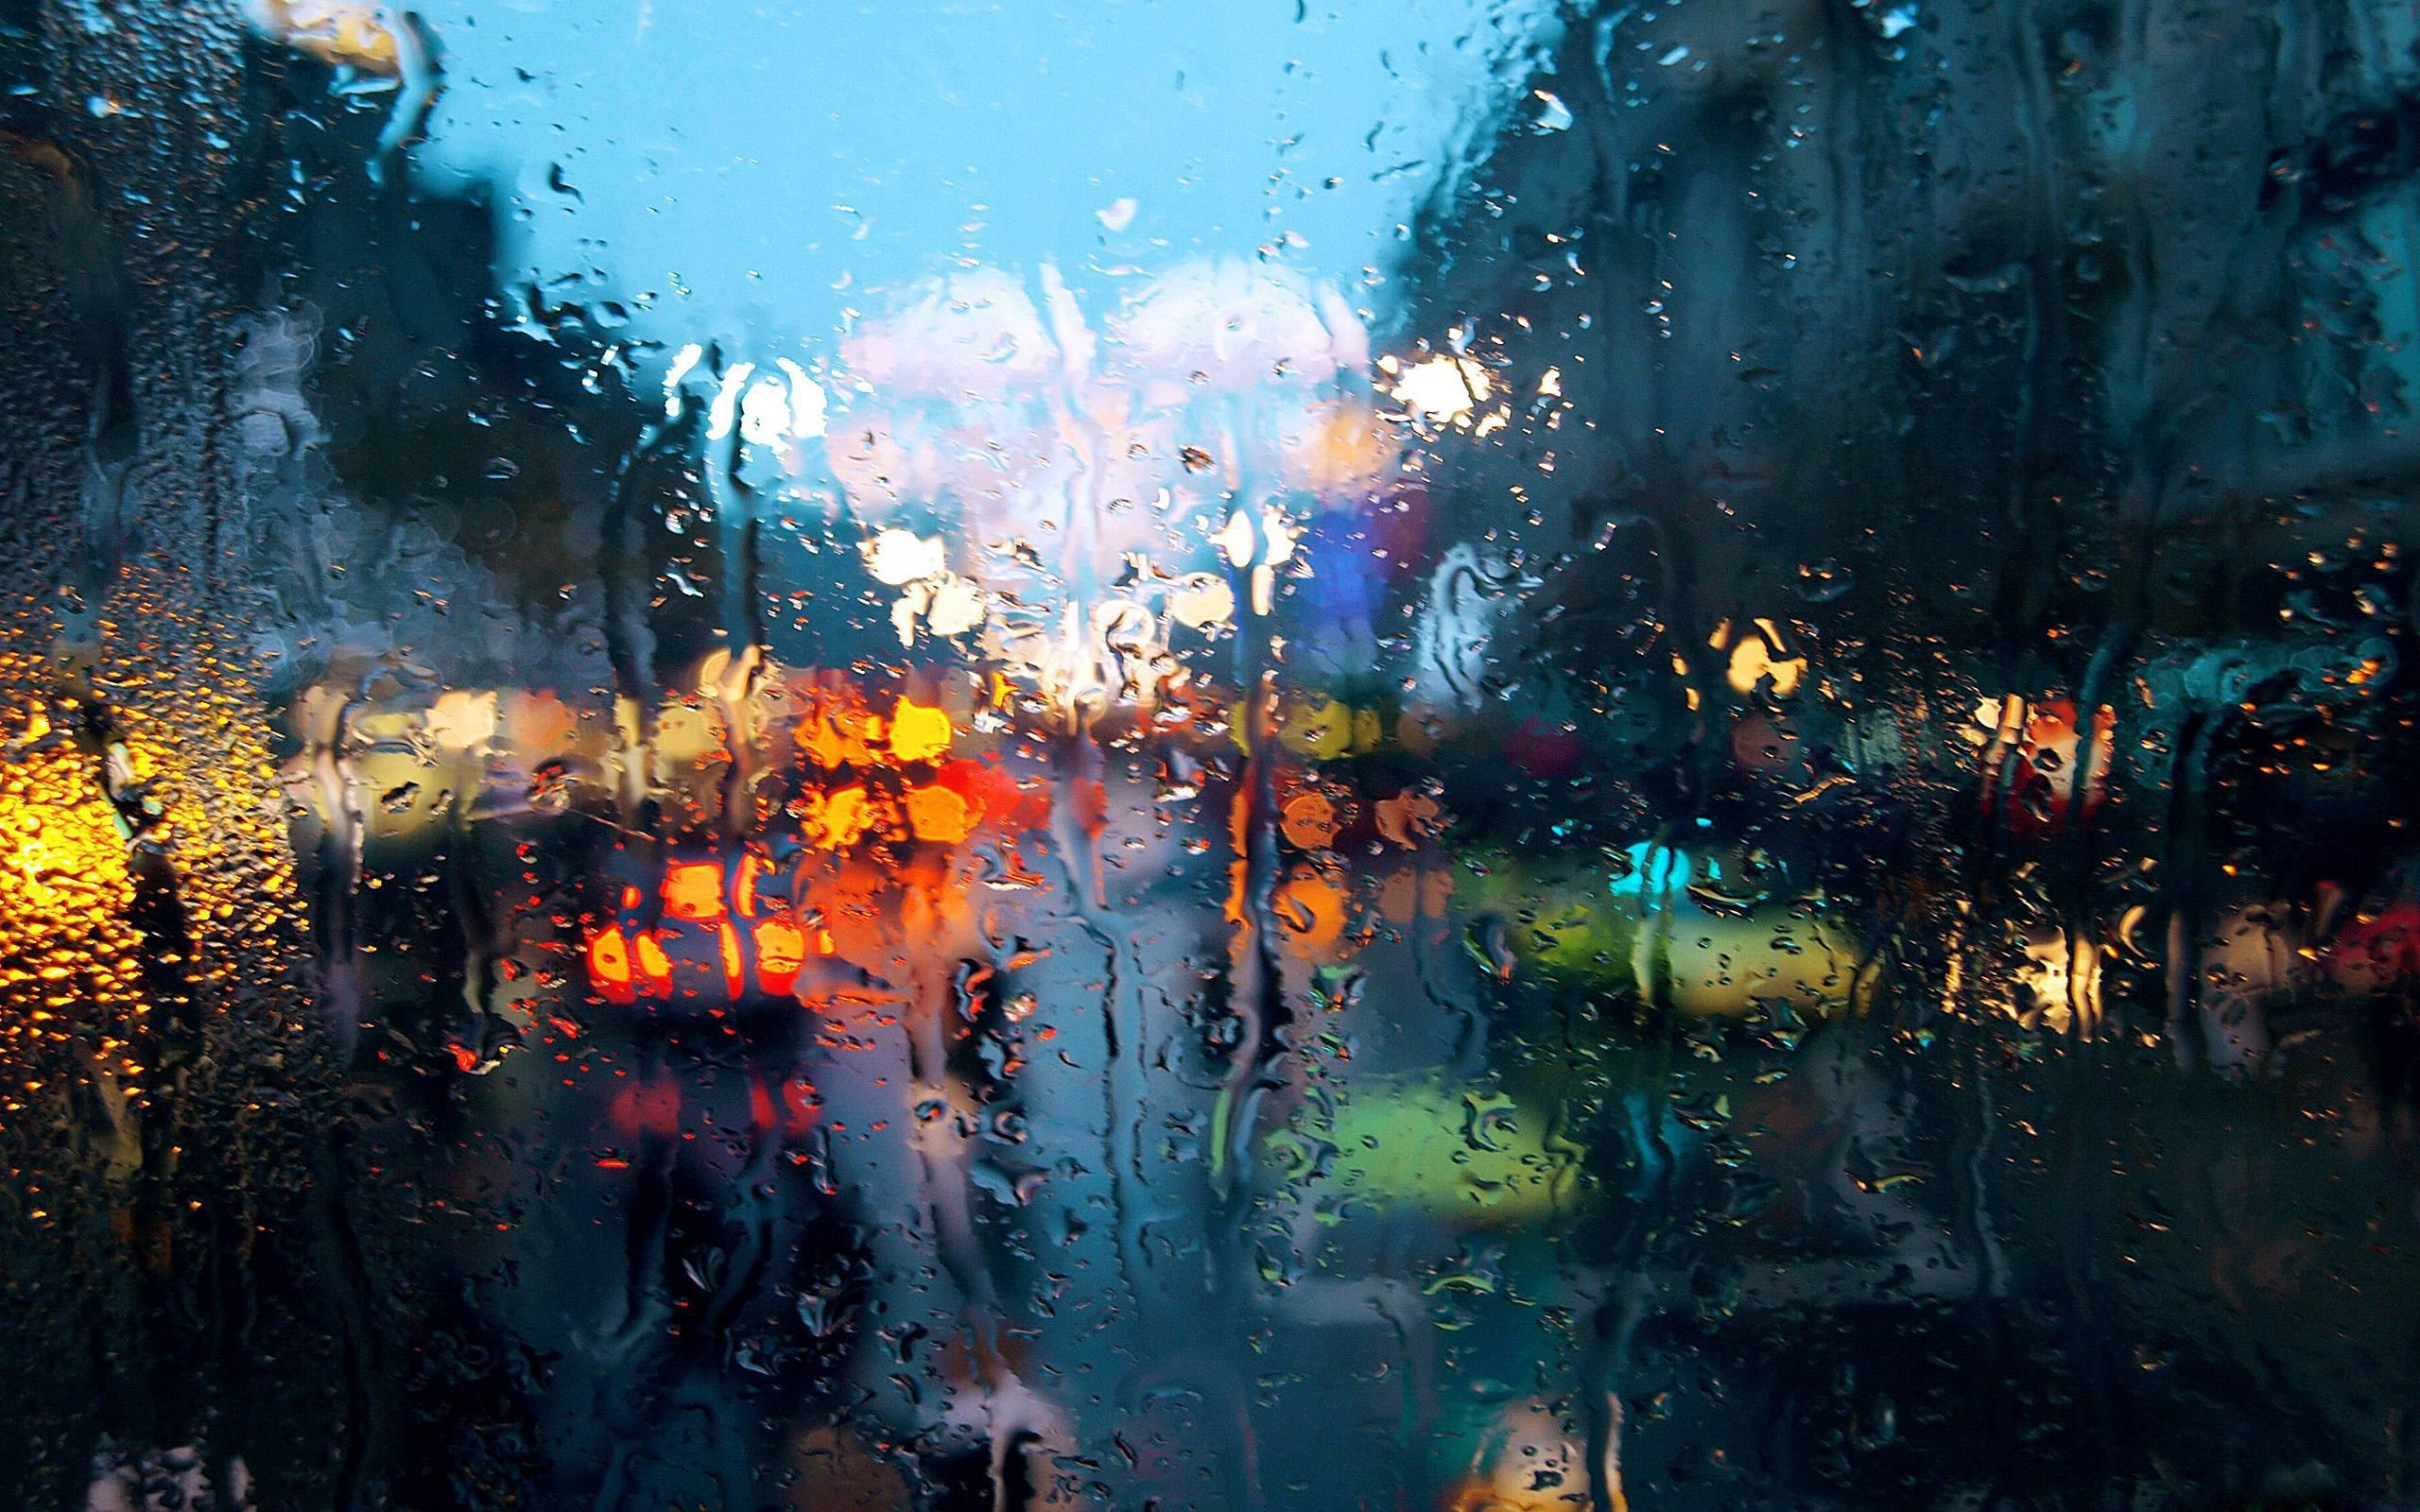 Rainy Window Live Wallpaper For Android Apk Download